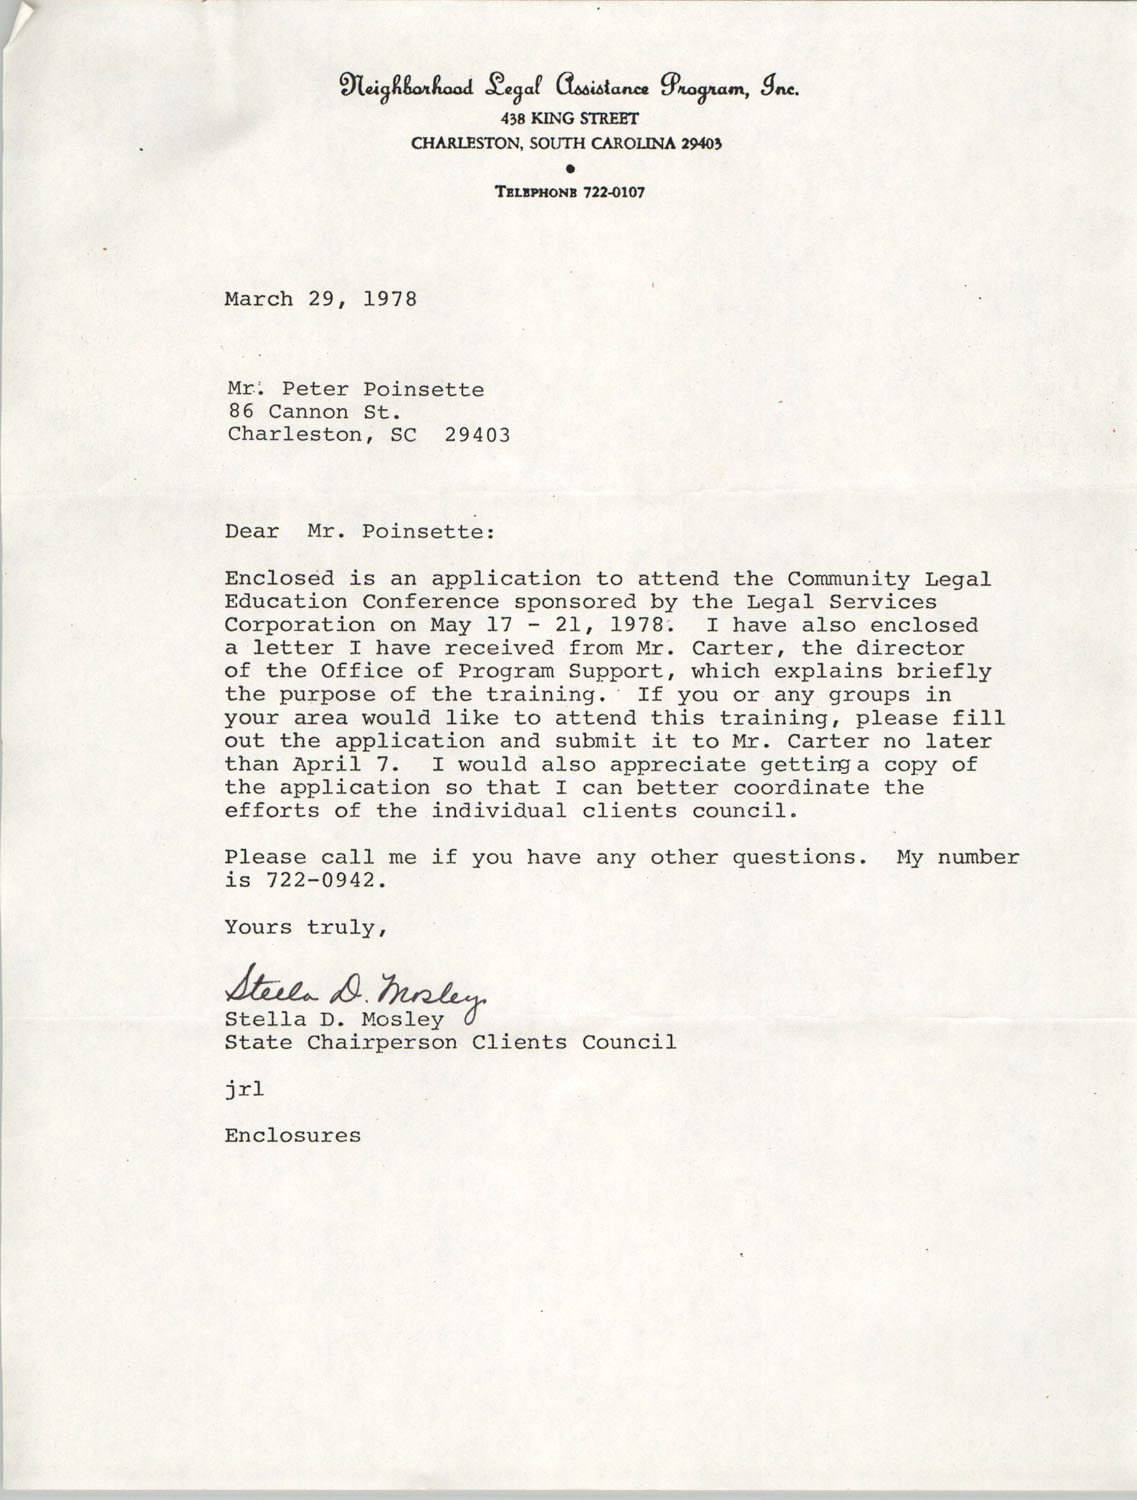 Letter from Stella D. Mosley to Peter Poinsettee, March 29, 1978